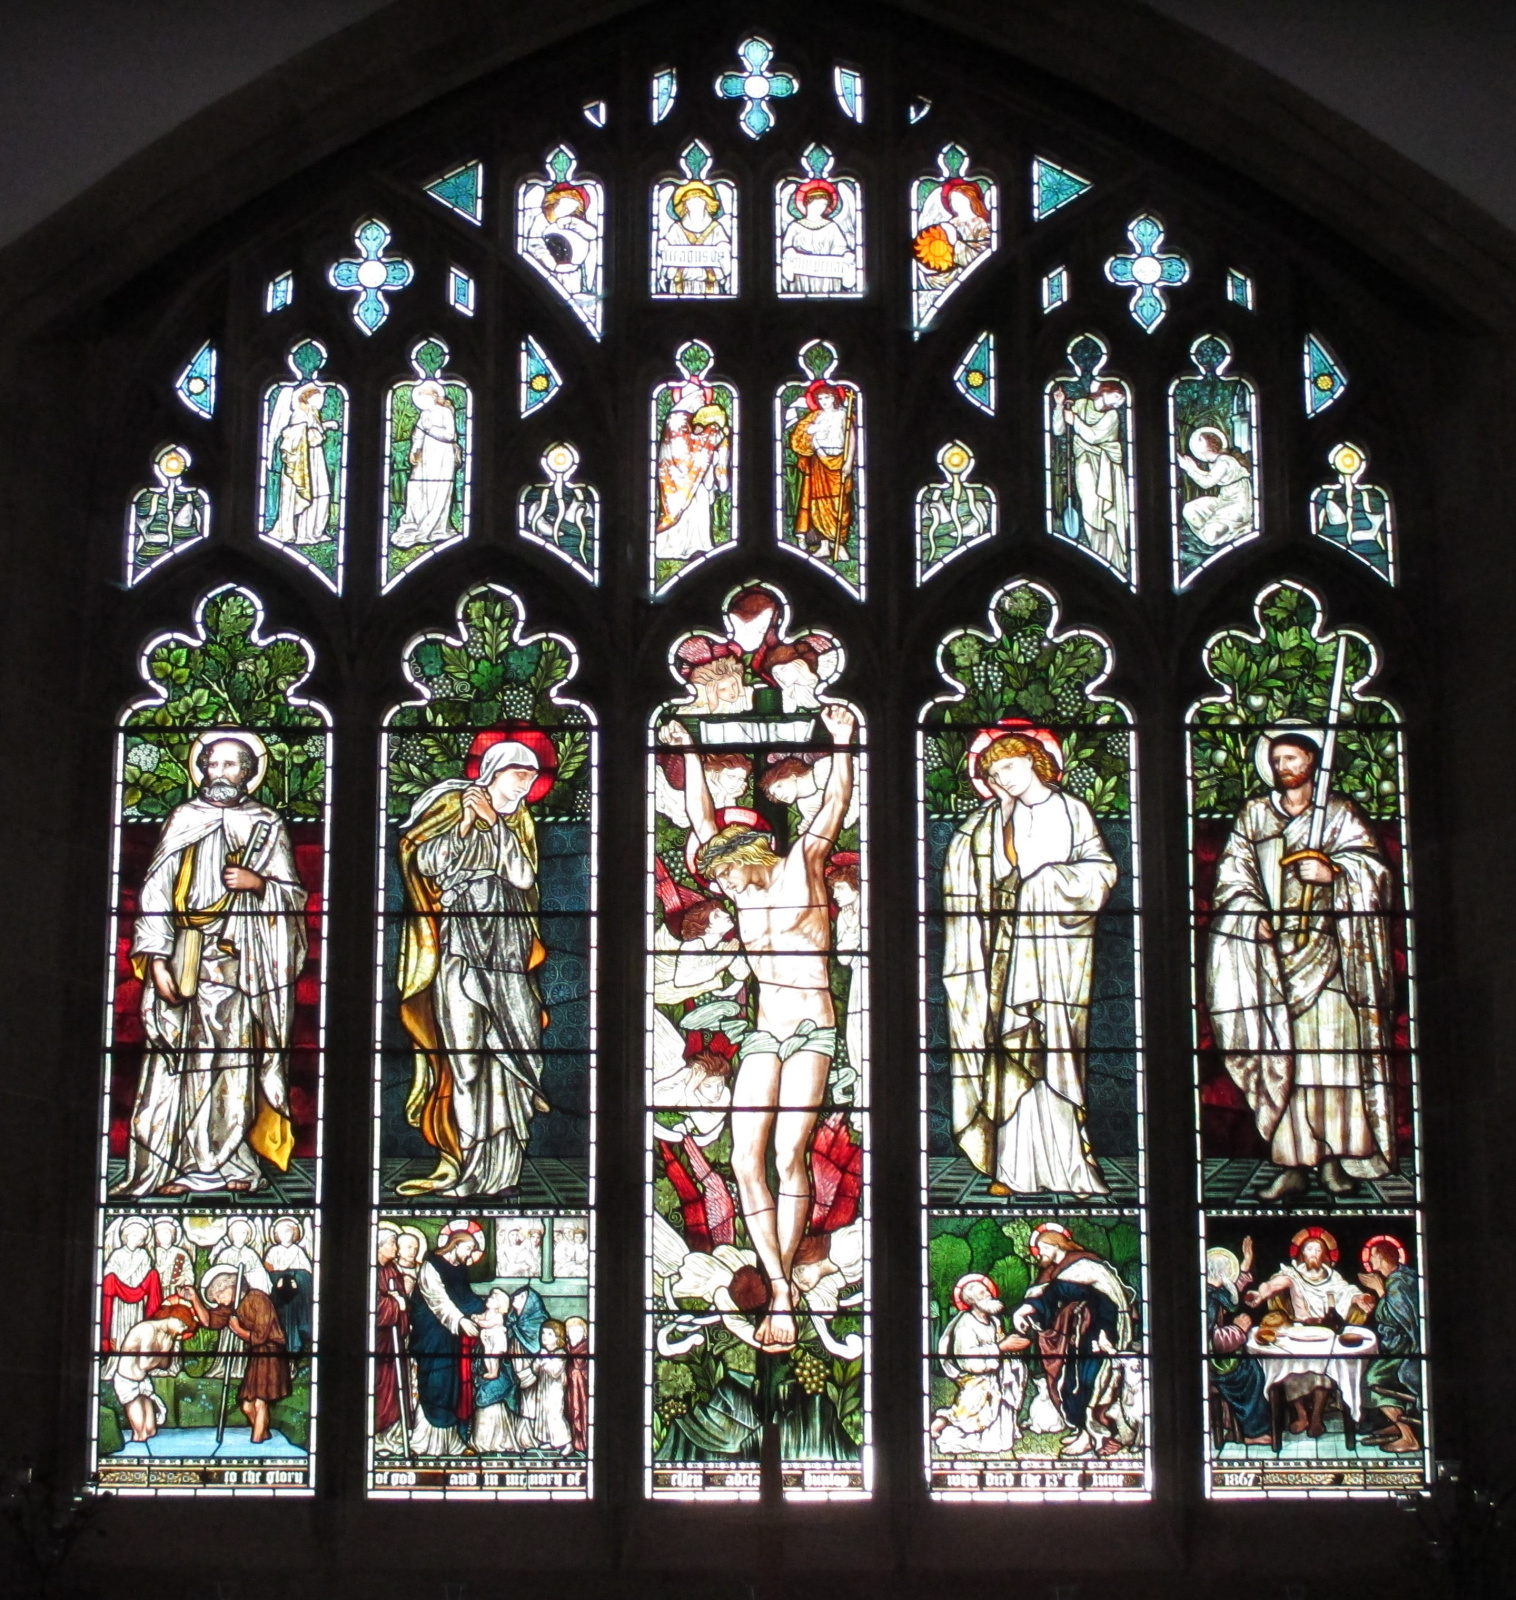 William Morris.  Fenêtre est de l'église de Jésus, Truthbeck, Cumbria (co-auteur avec Edward Burne-Jones et Ford Madox Brown)